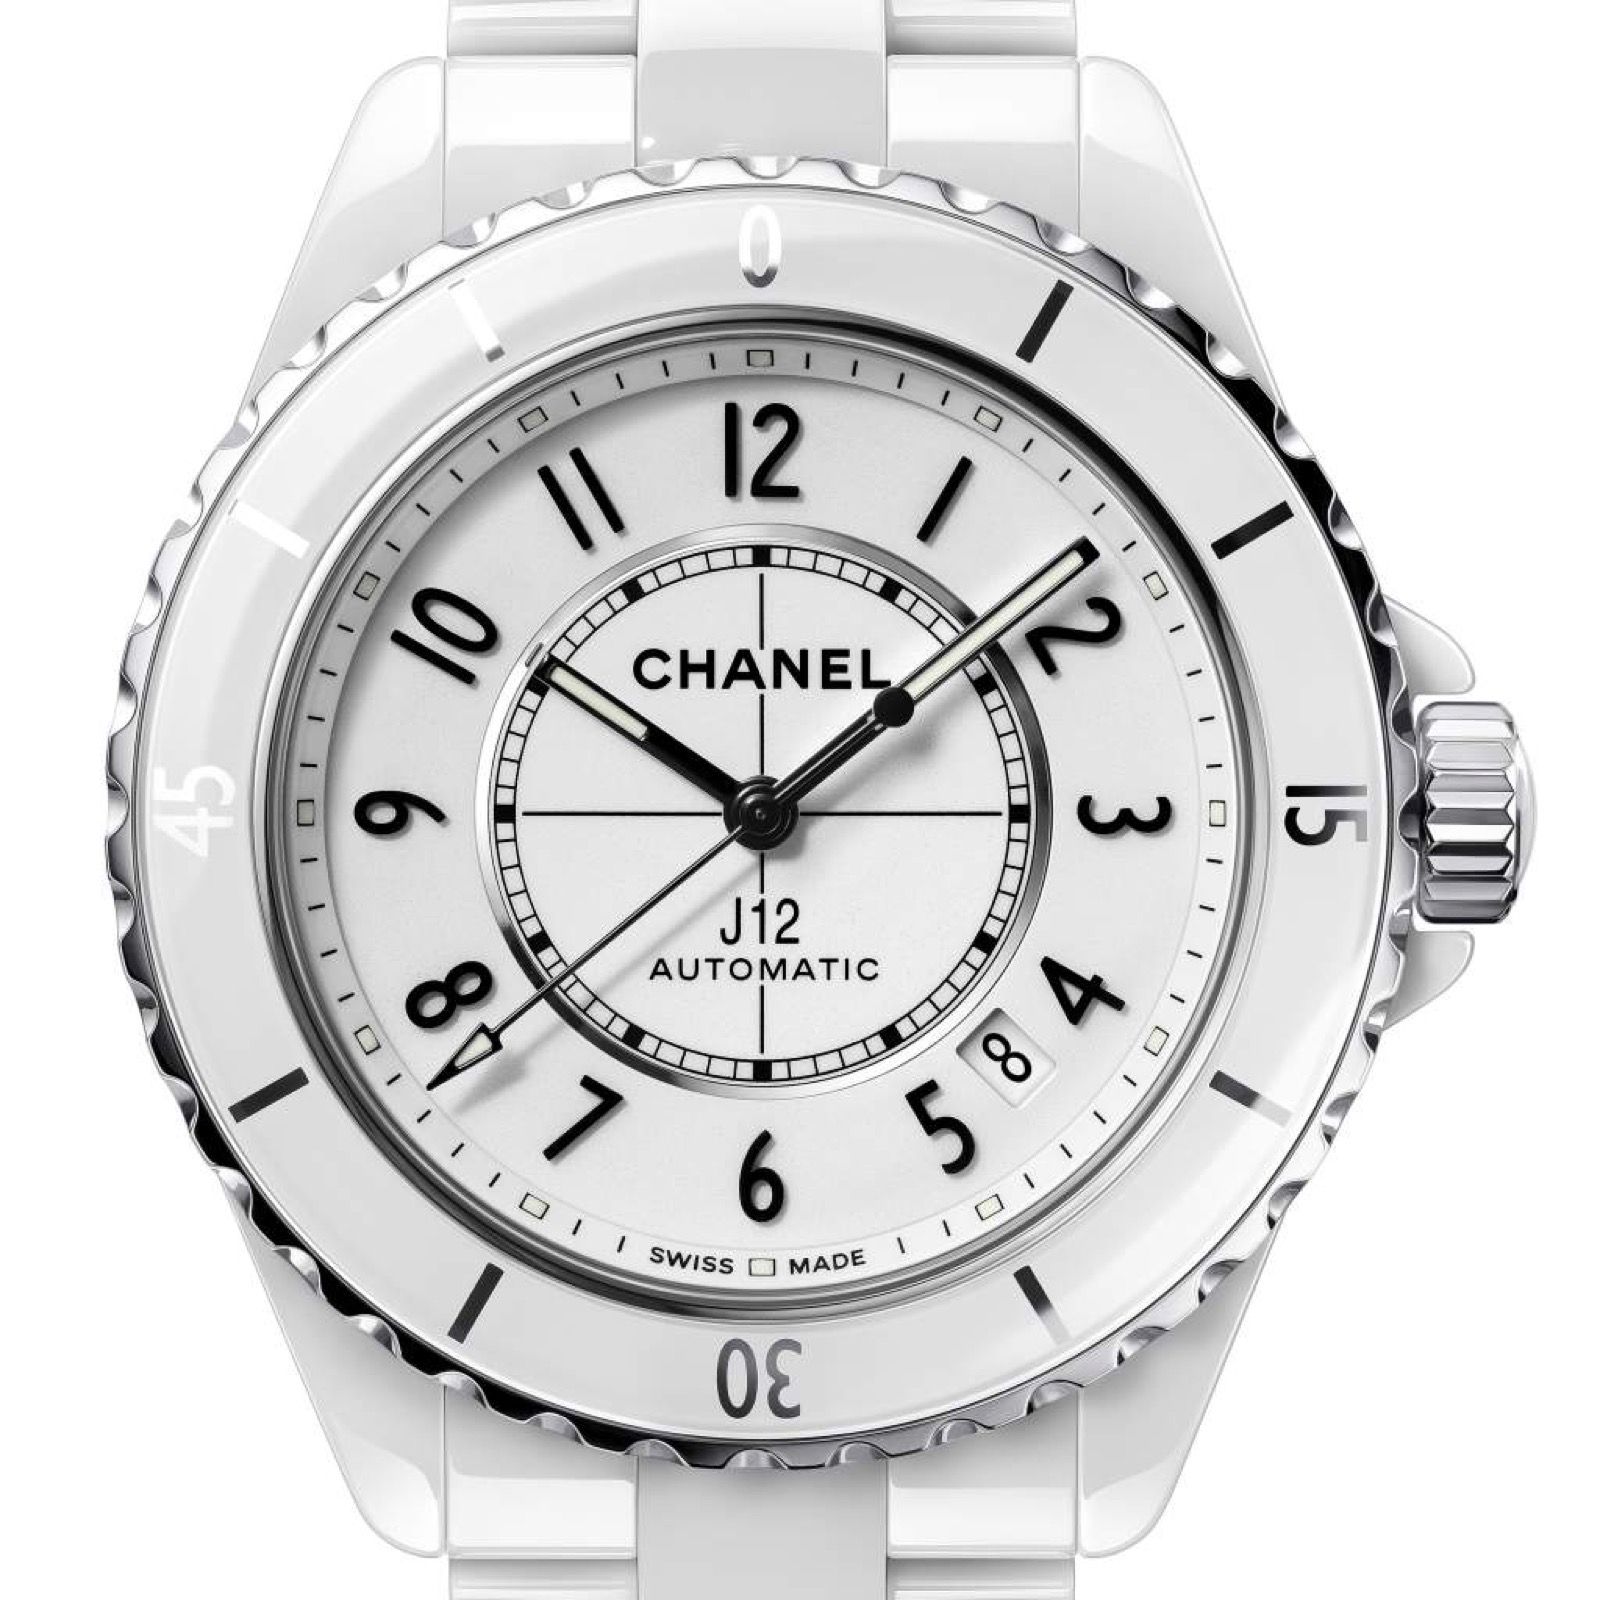 GPHG 2019 Chanel J12 Calibre 12.1